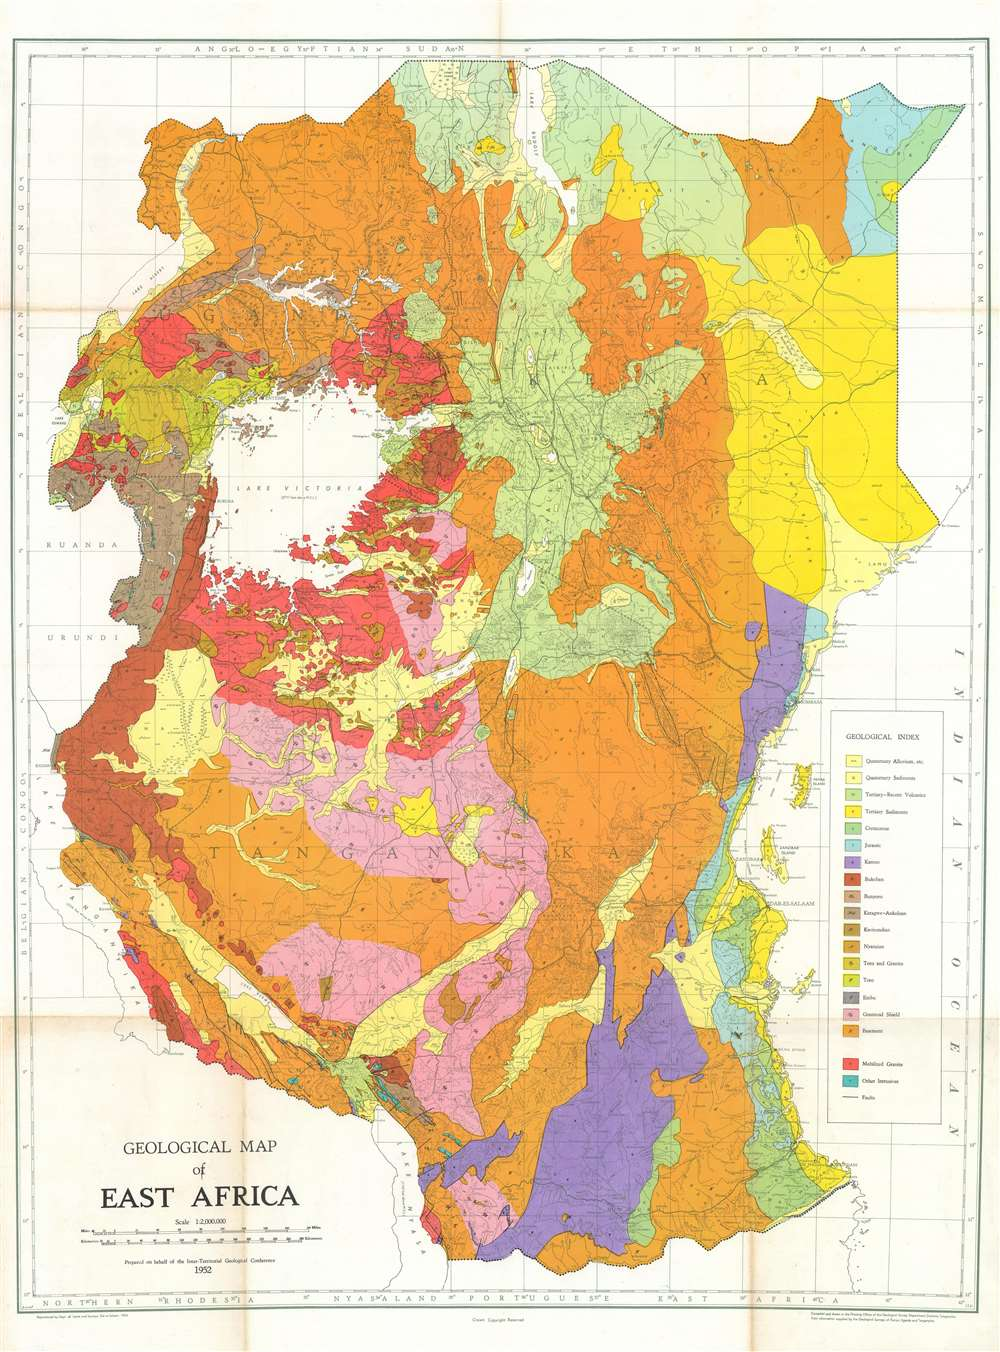 Geological Map of East Africa.